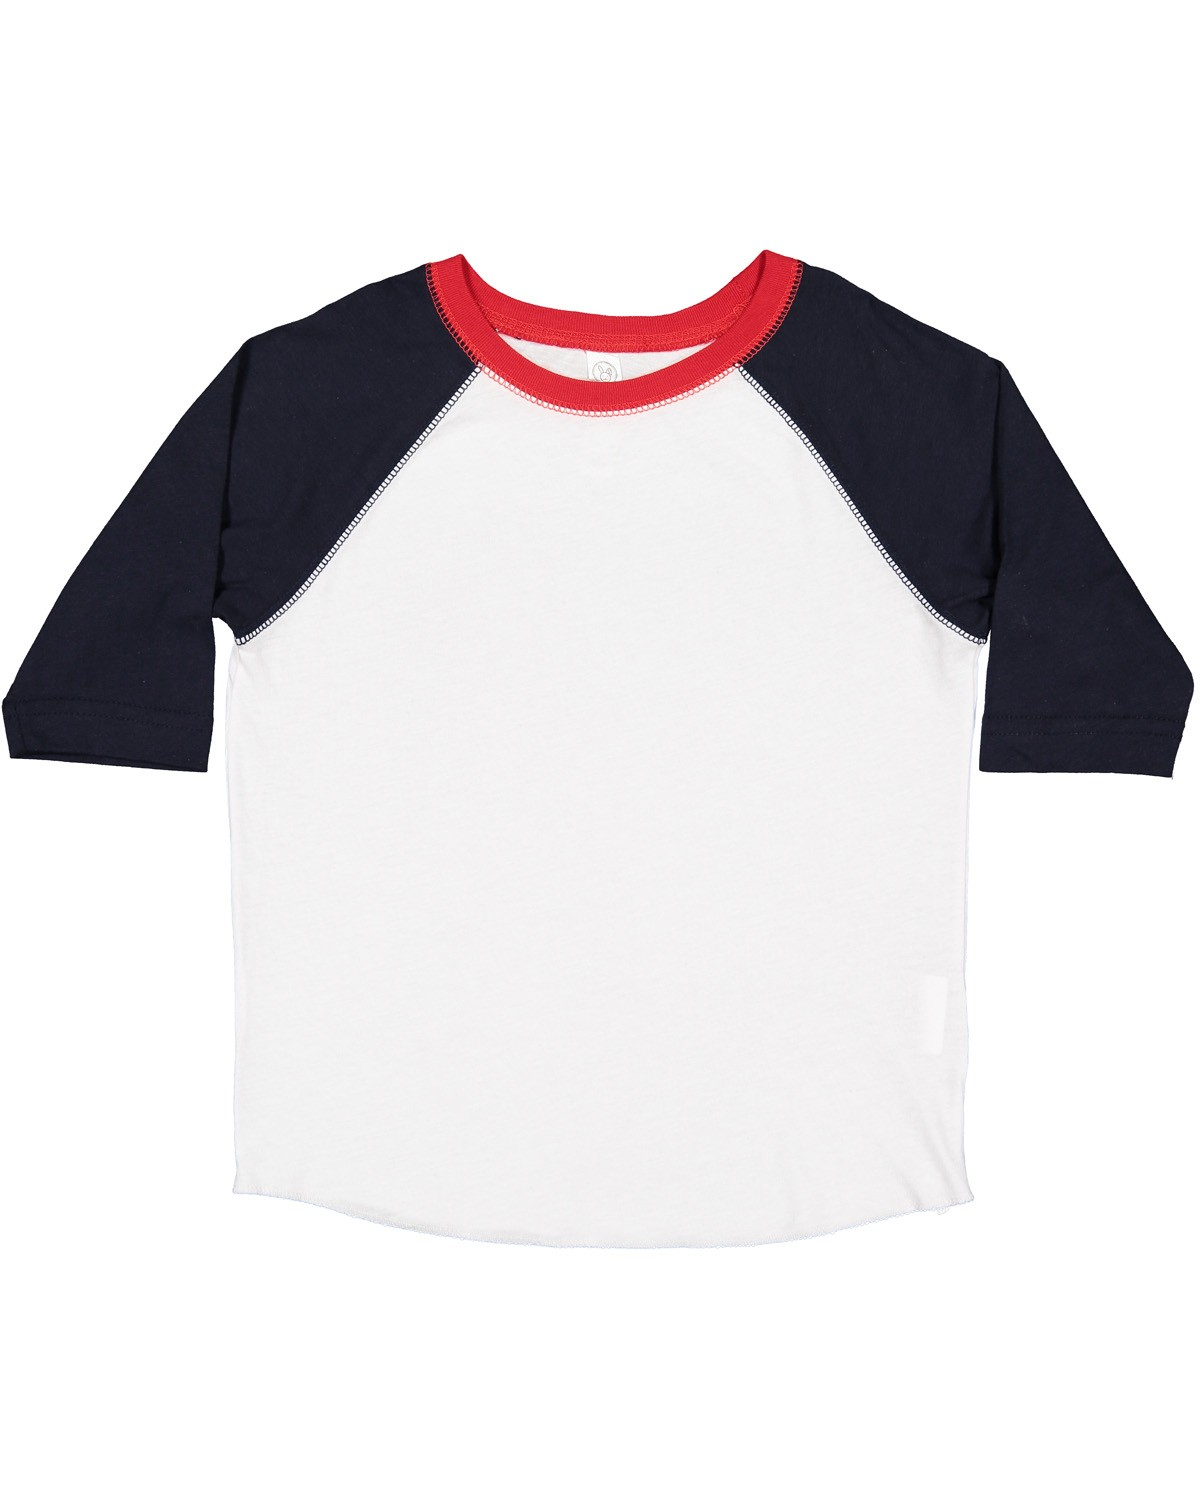 RS3330 Rabbit Skins WHITE/ NAVY/ RED